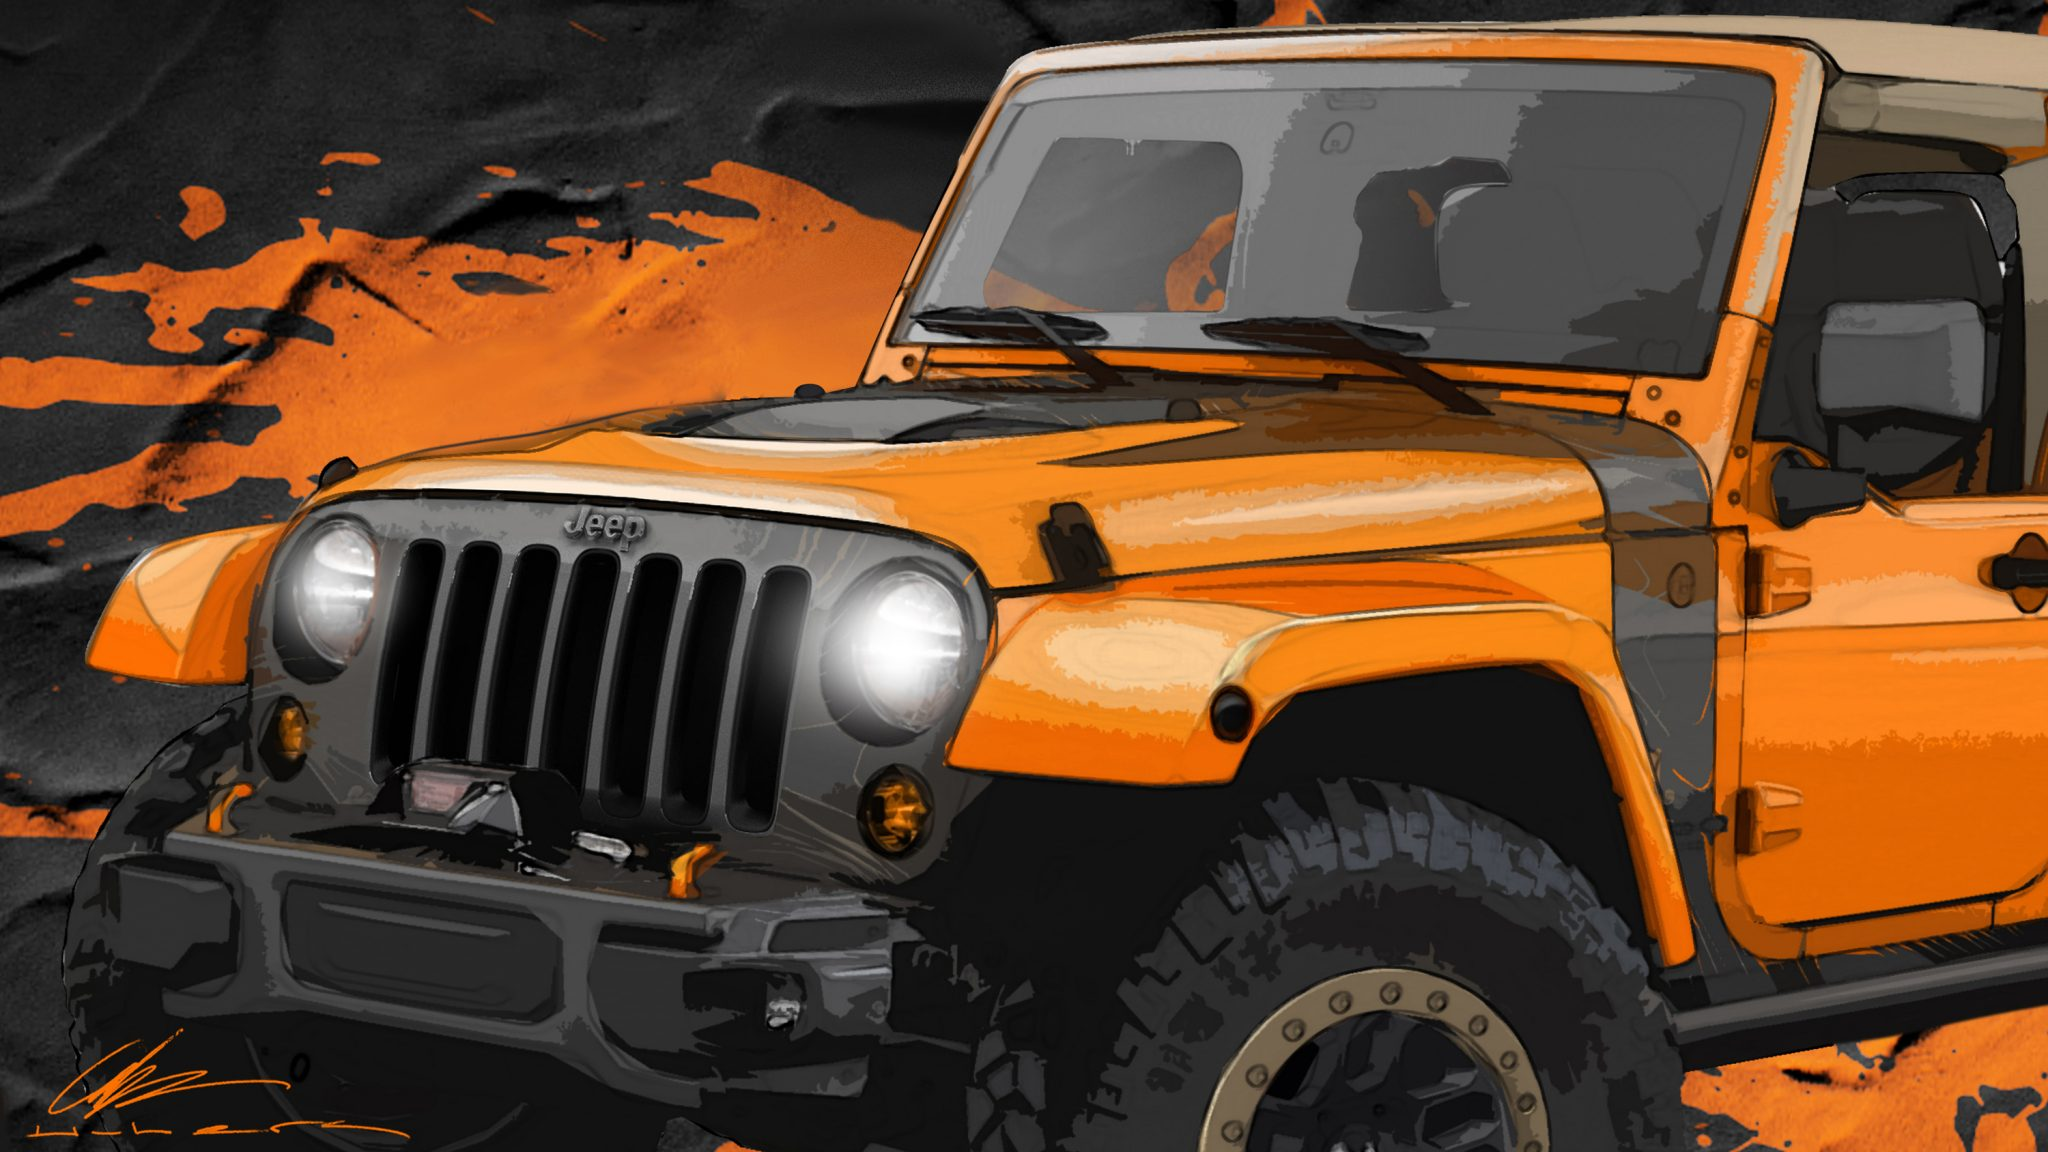 Moore Chrysler Jeep >> Chrysler Offers 2014 Moab Easter Jeep Safari Vehicles ...